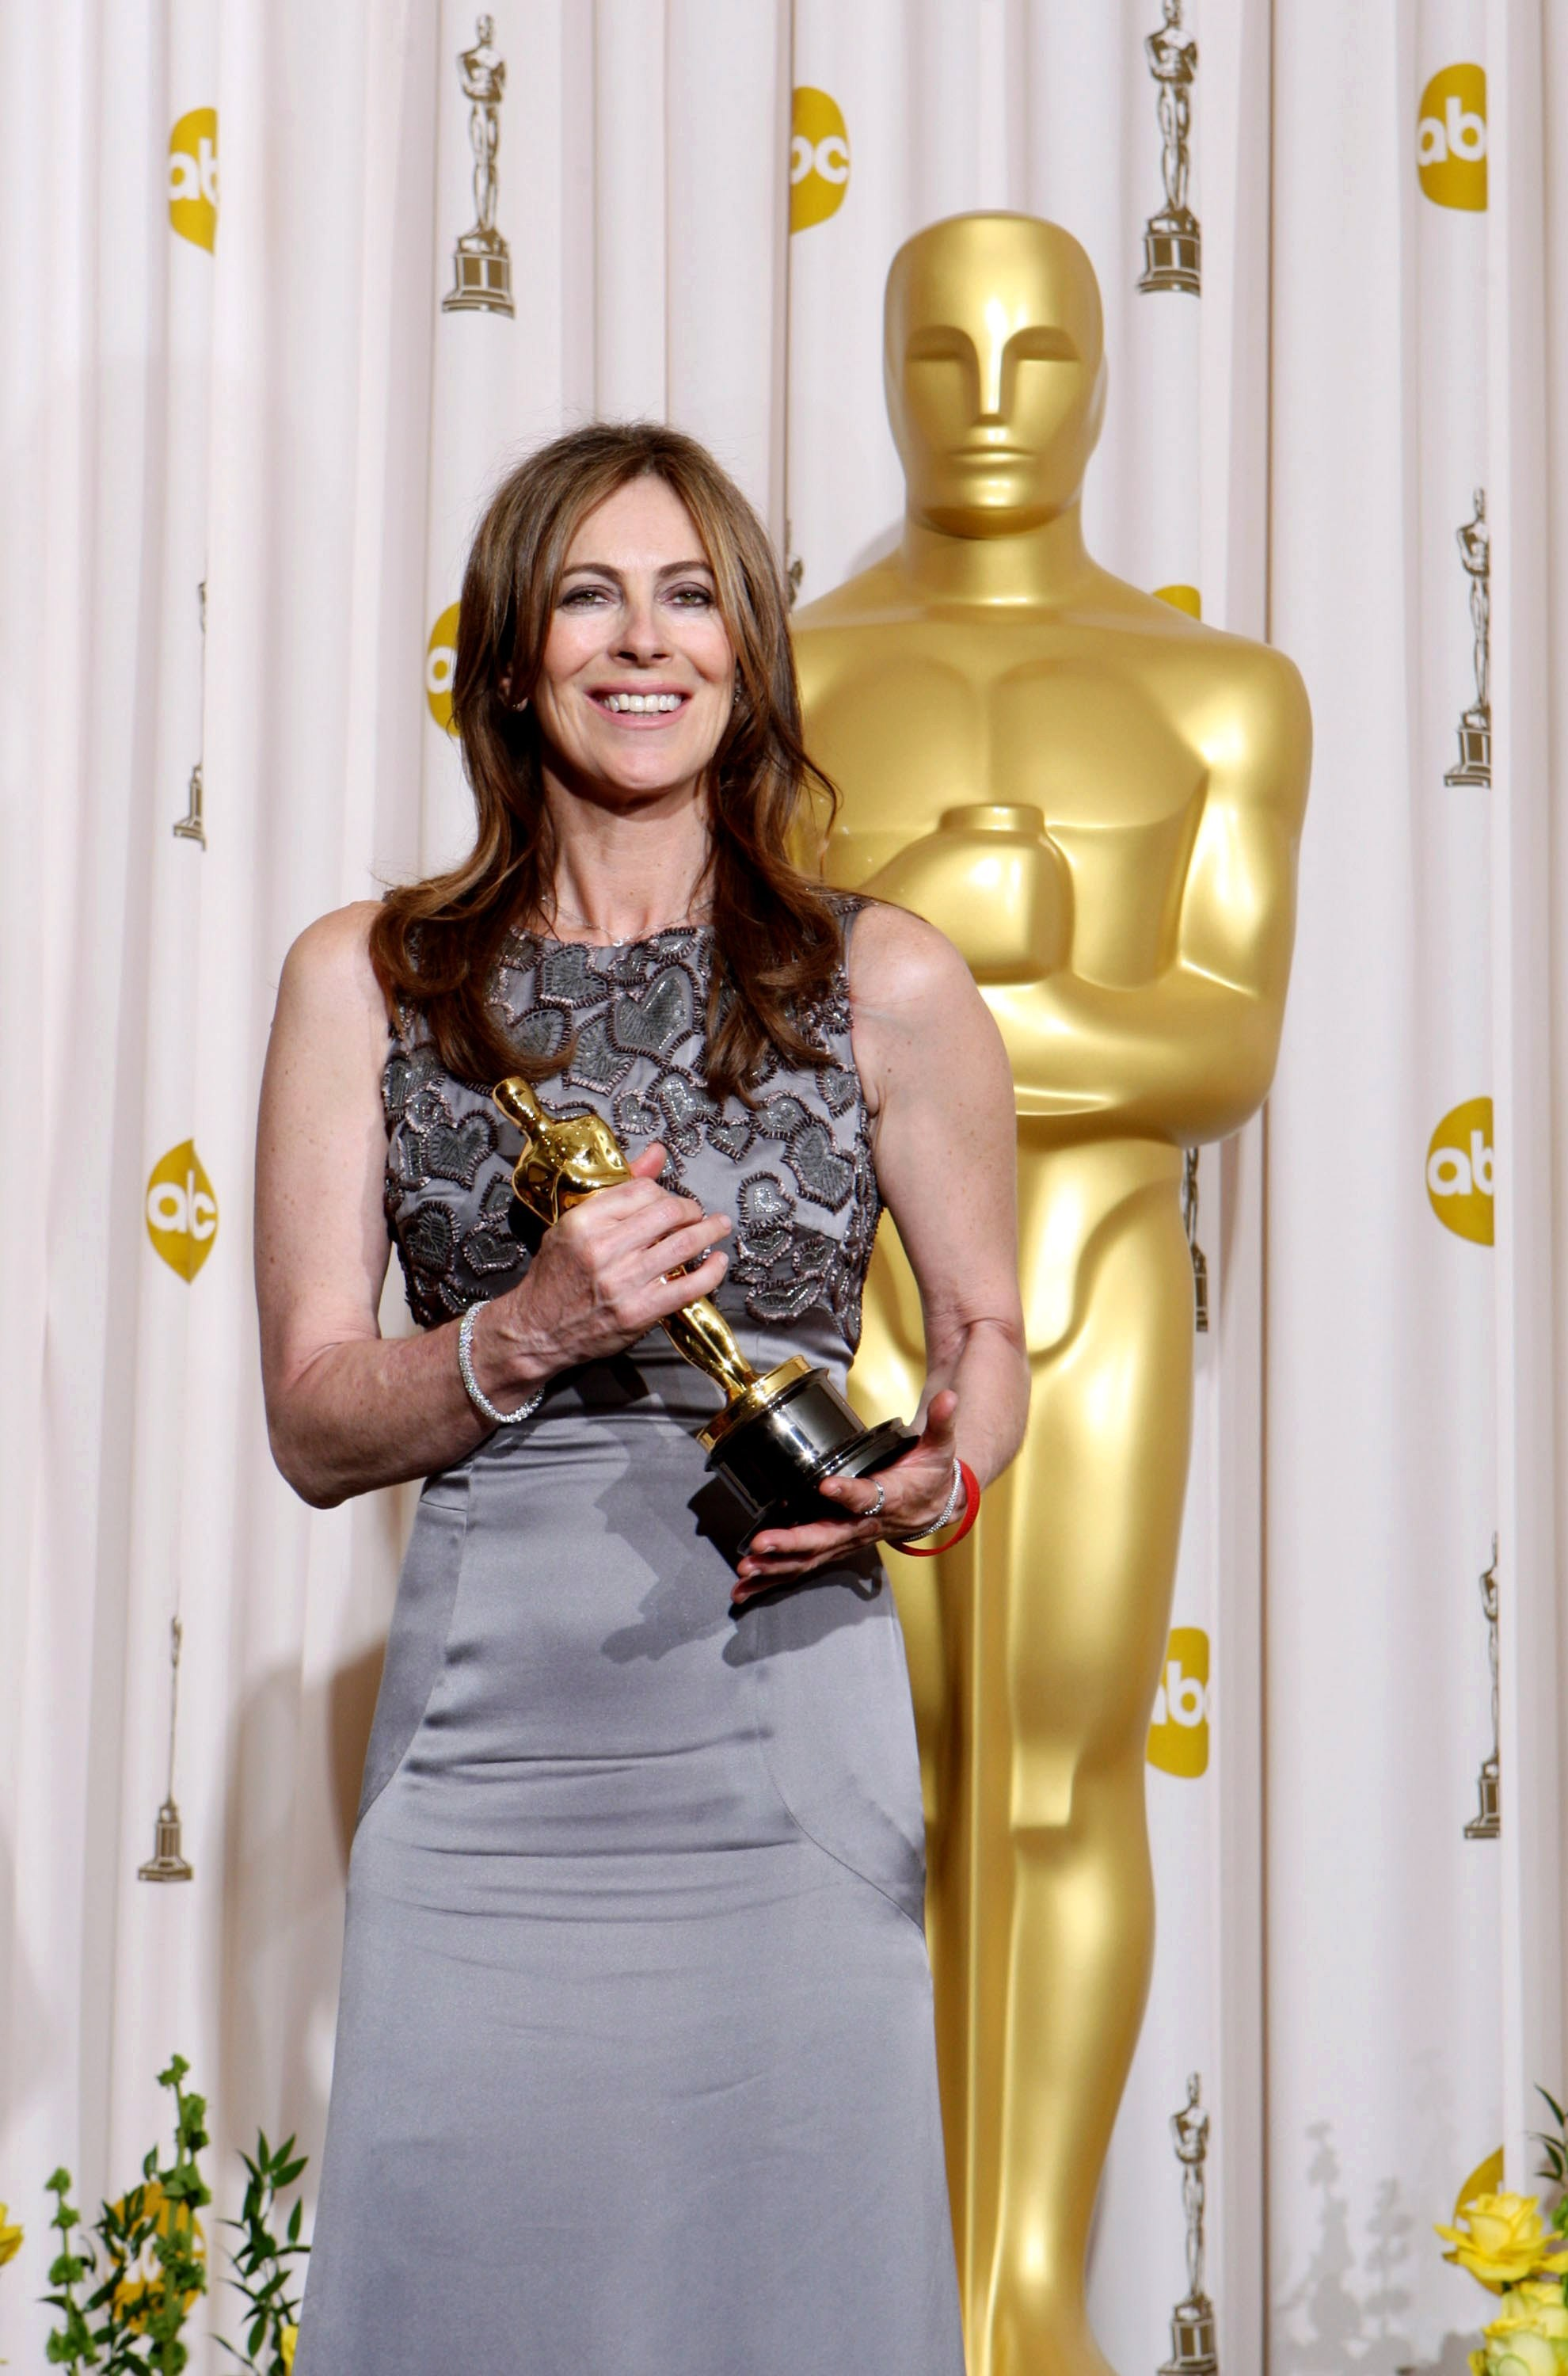 Kathryn Bigelow on Hollywood's Gender Problems | The Mary Sue